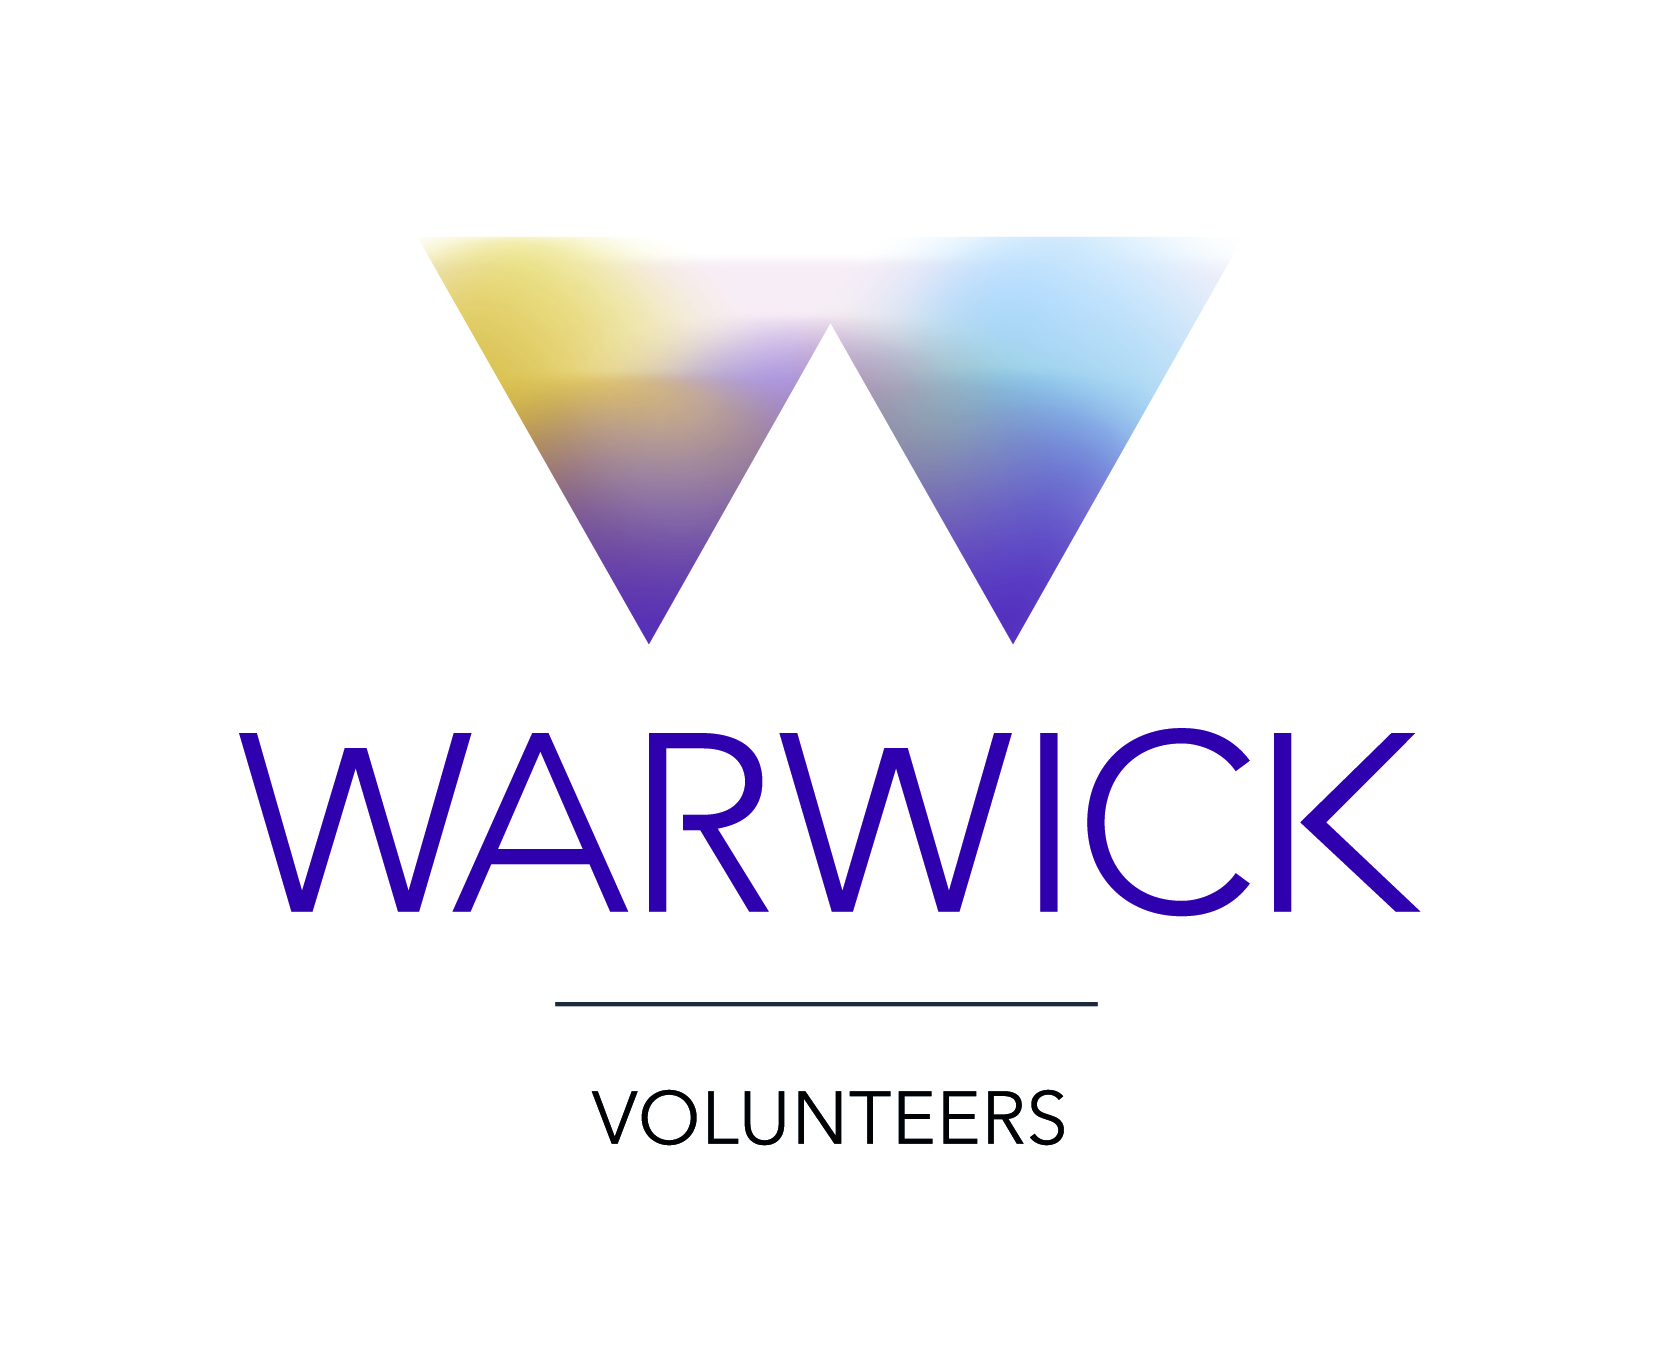 Warwick Volunteers